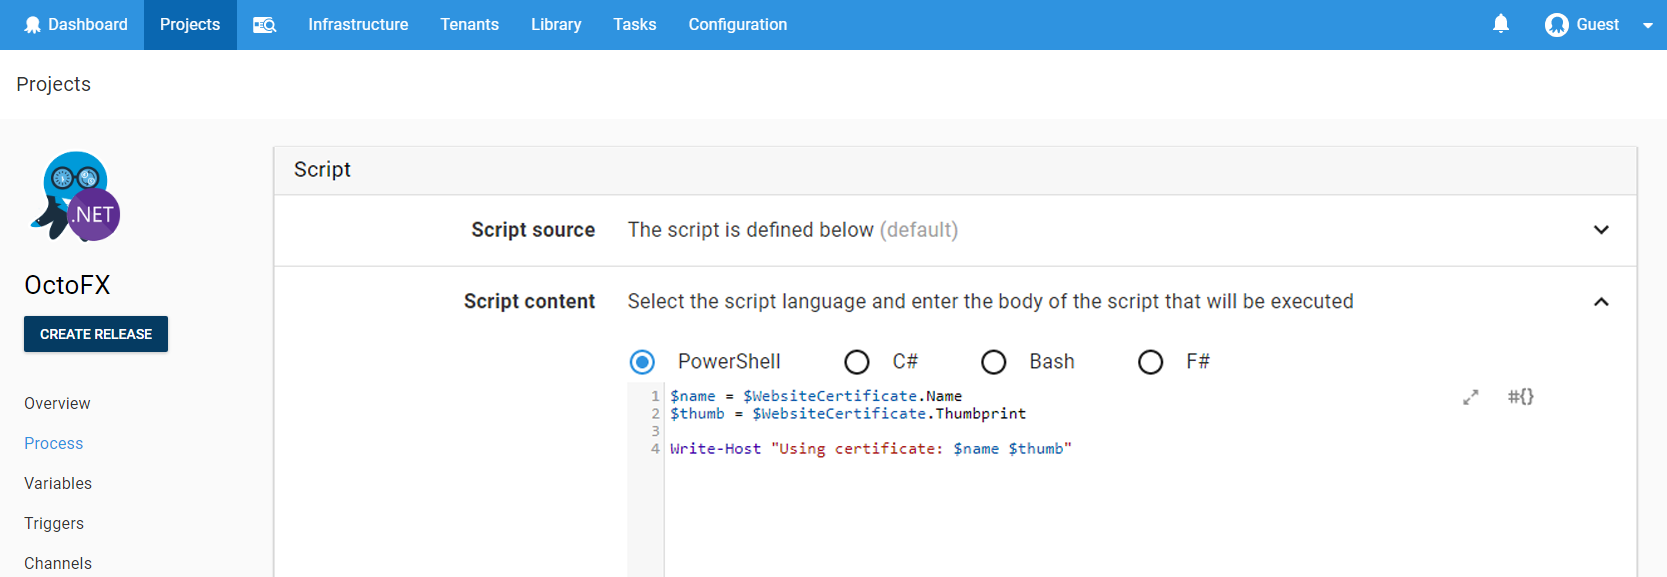 Use certificate properties in conjunction with custom deployment scripts to tap properties such as public key, thumbprint or subject name to use as part of your custom script.